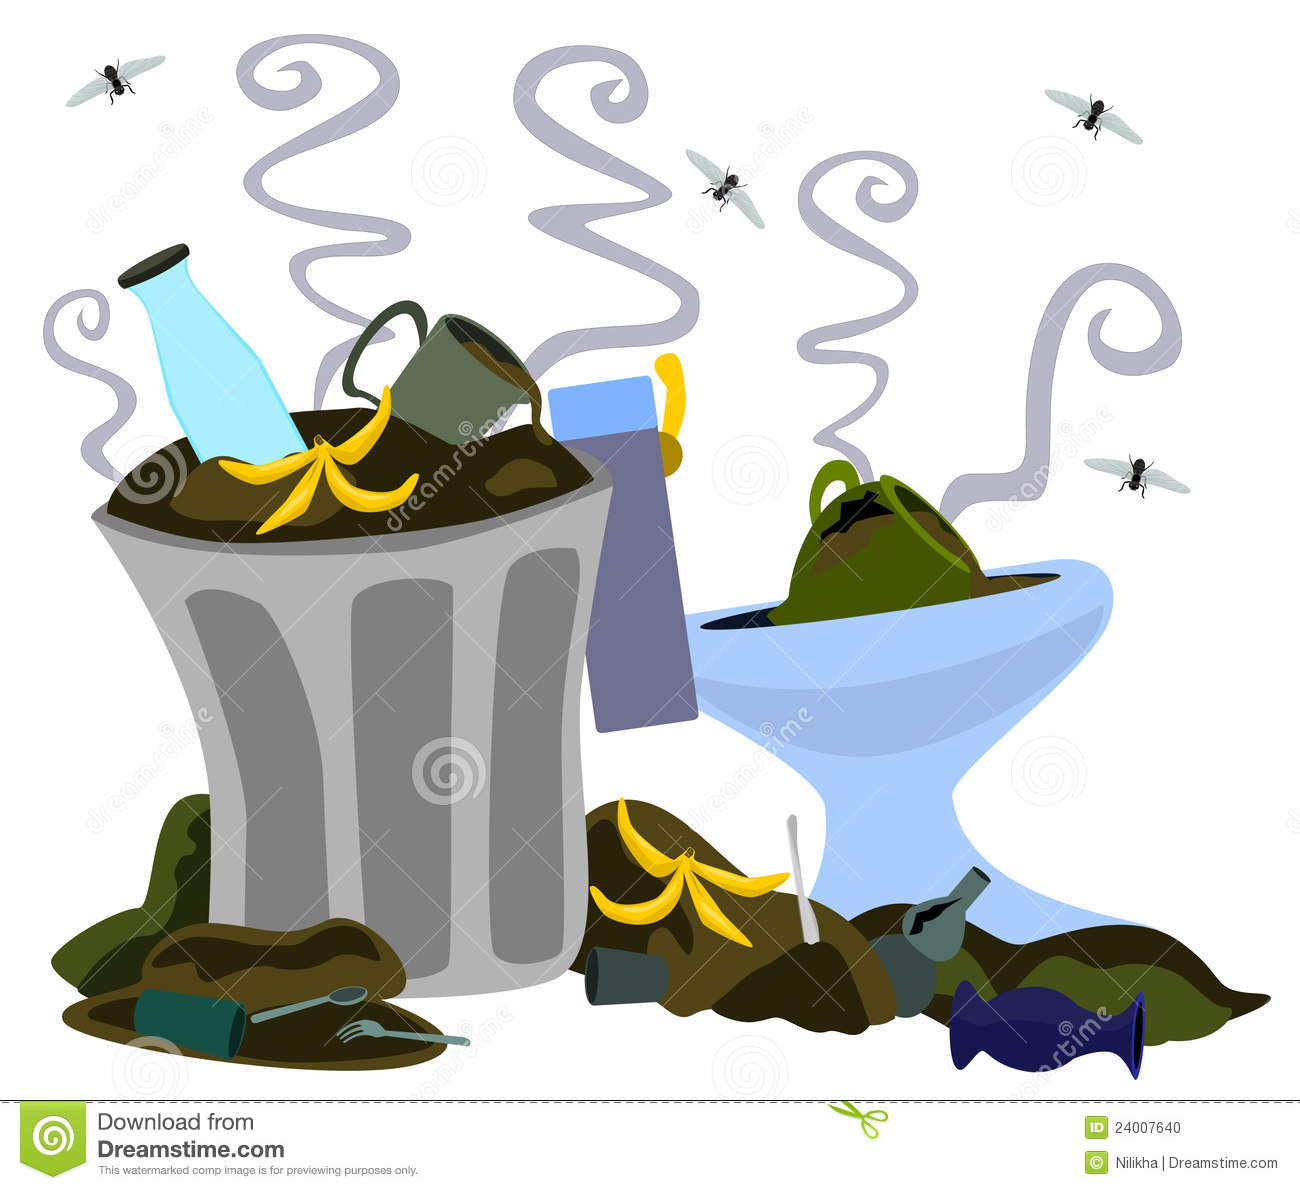 Garbage Dump Stock Photo   Image  24007640